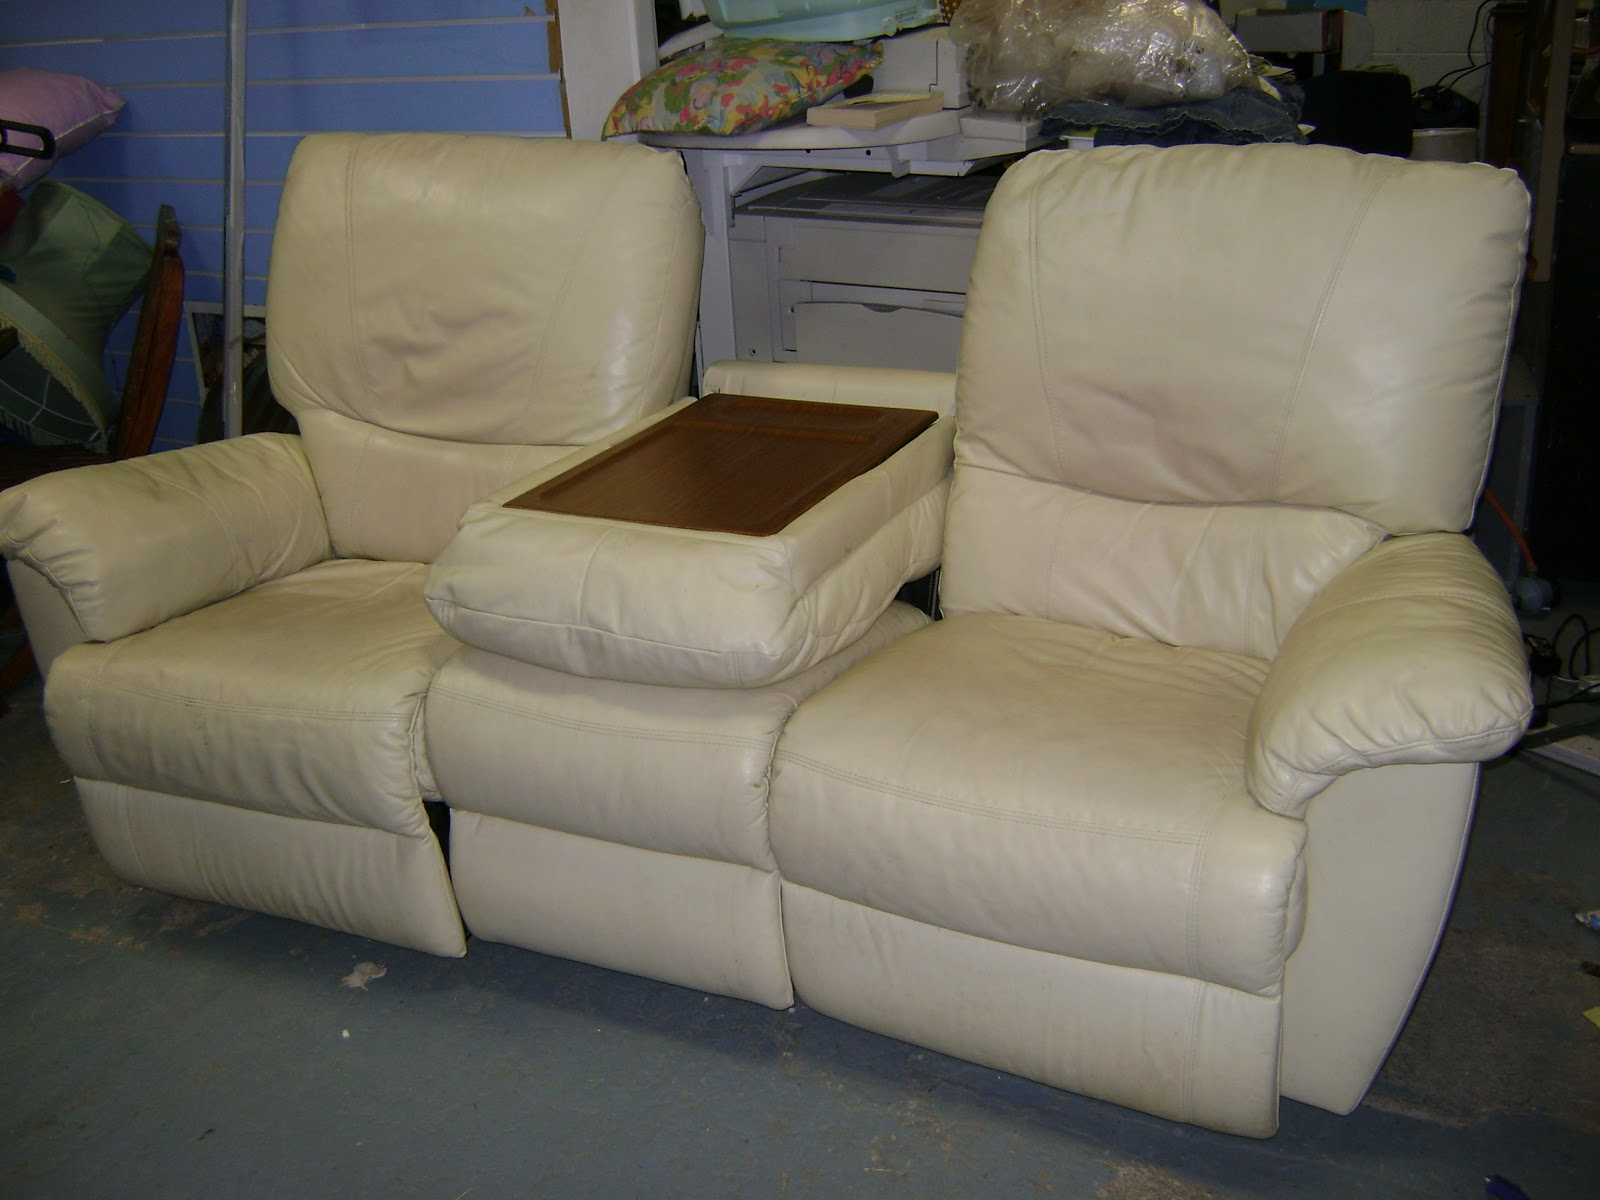 Deccie 39 s done deal second hand furniture house for Second hand sofas